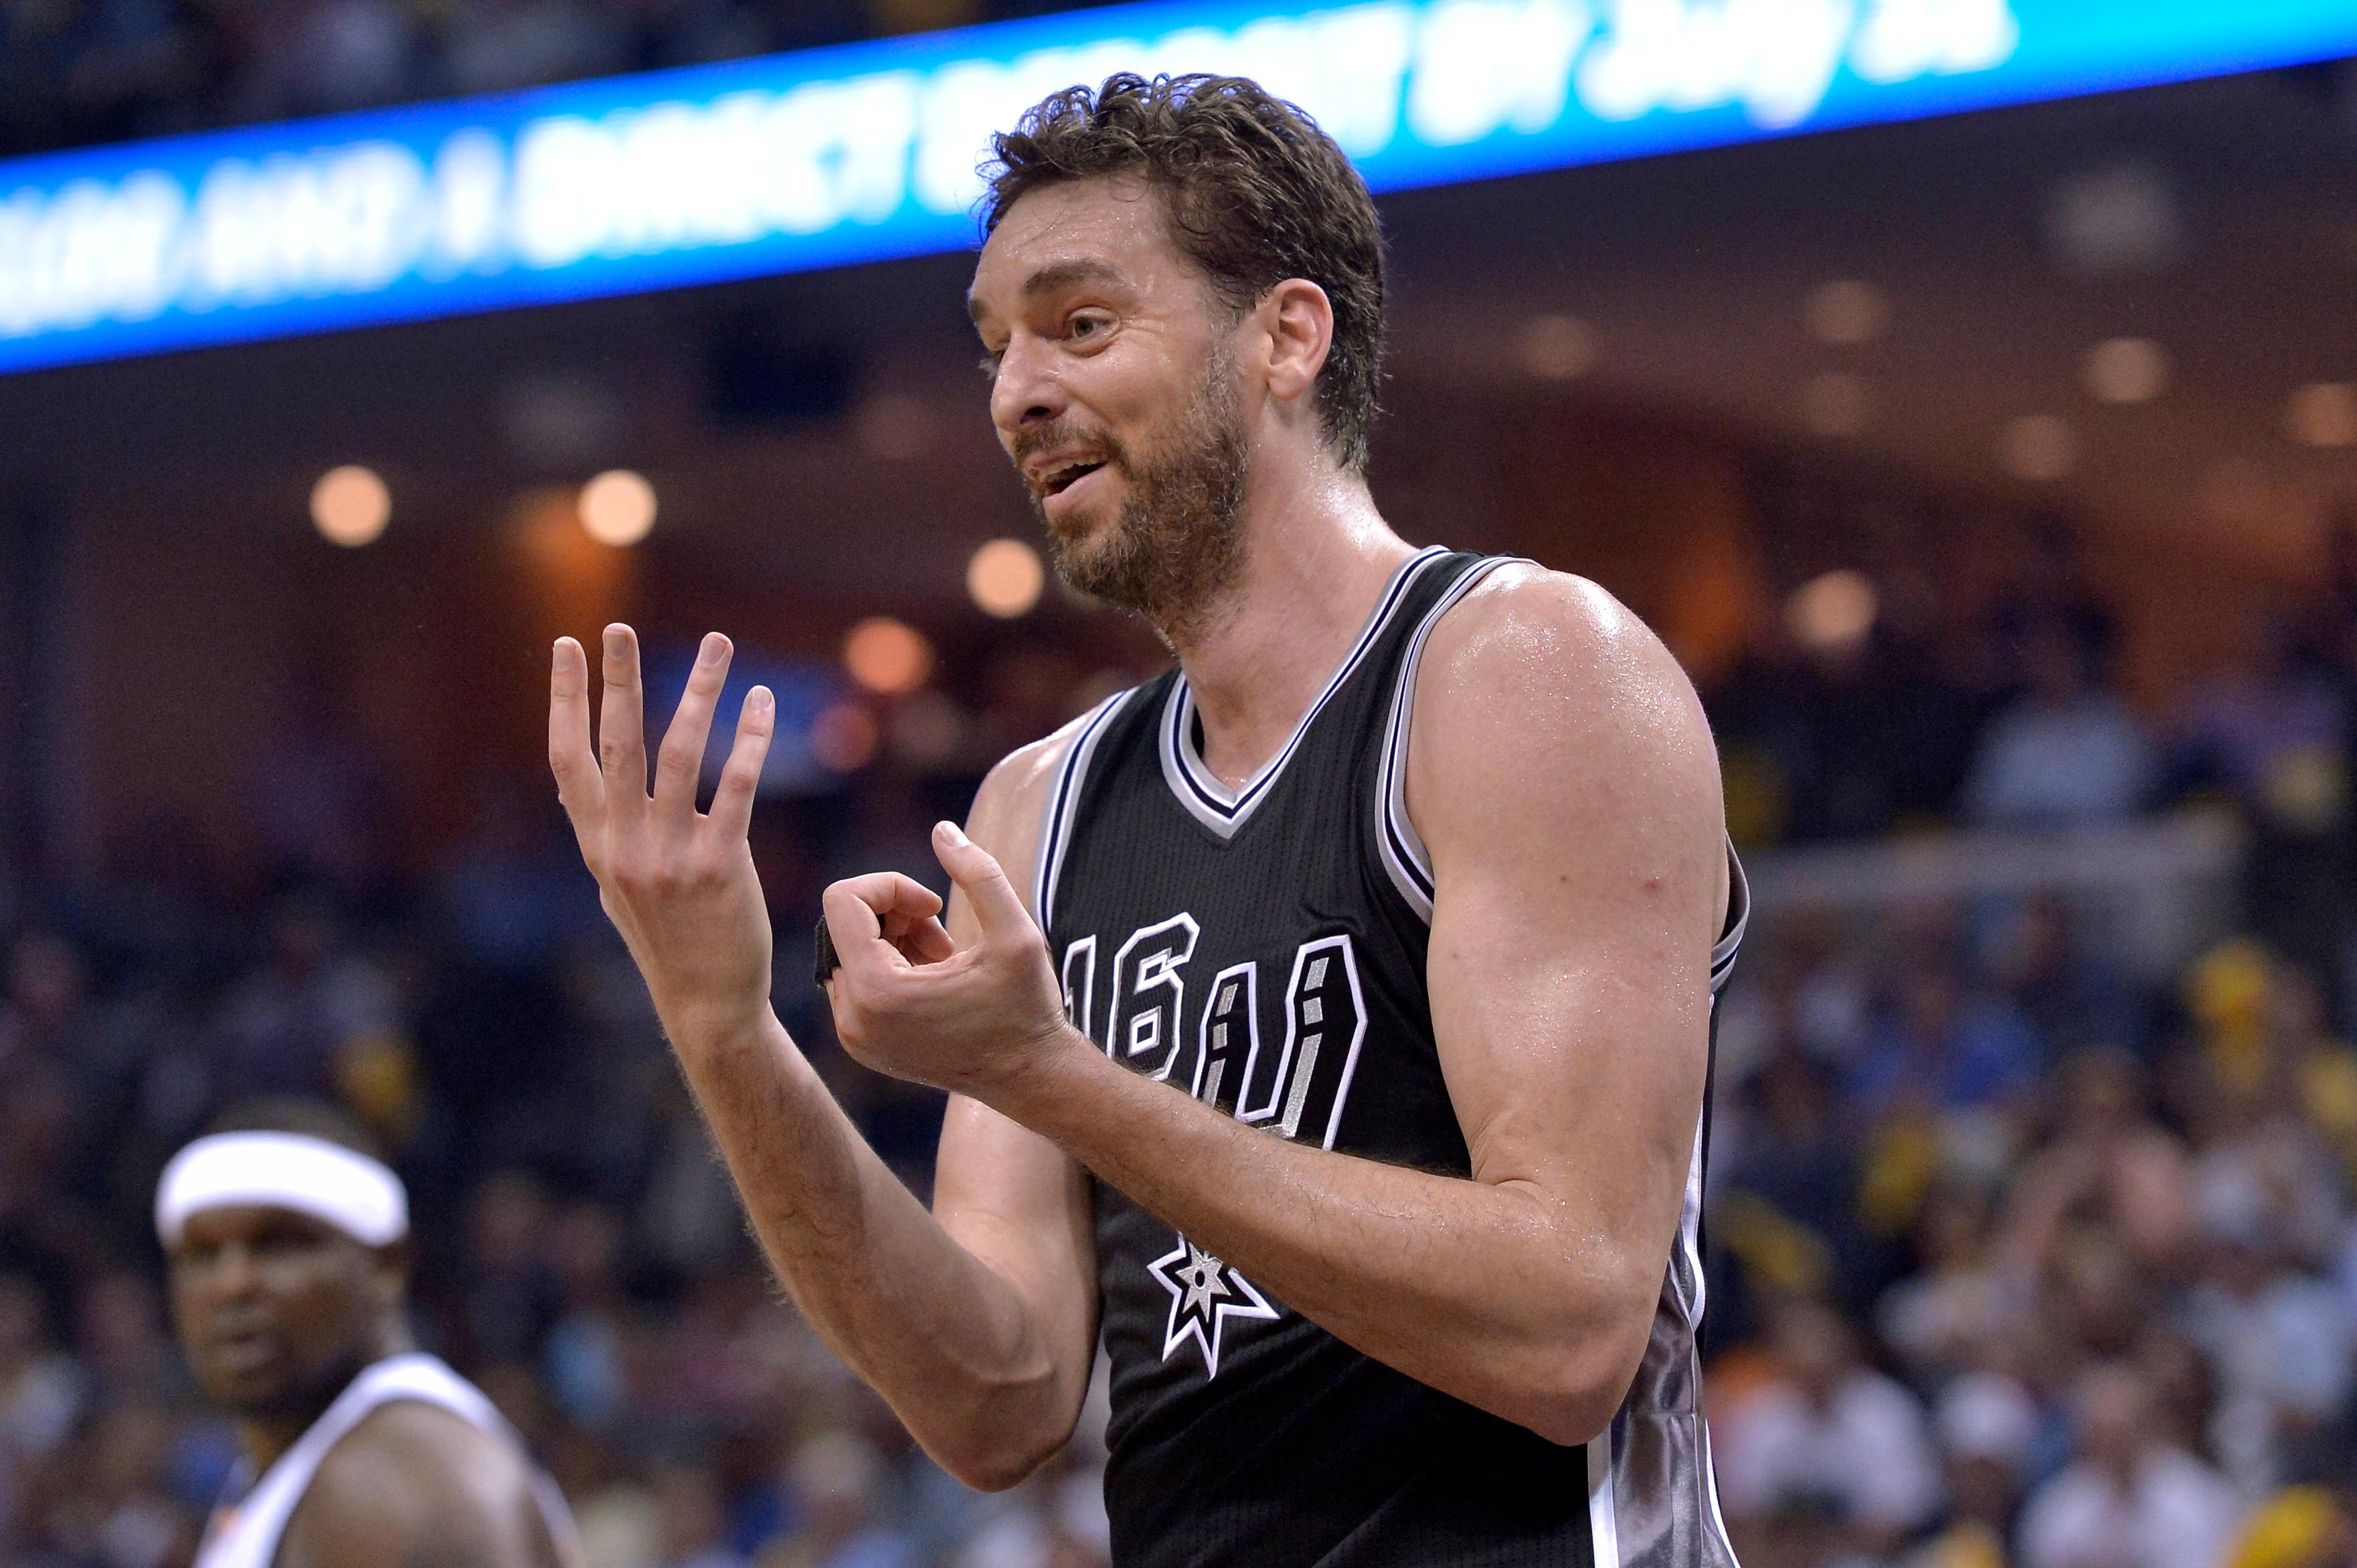 San Antonio Spurs center Pau Gasol reacts to a referee's call during the second half of Game 3 of the team's NBA basketball first-round playoff series against the Memphis Grizzlies, Thursday, April 20, 2017, in Memphis, Tenn. (AP Photo/Brandon Dill)